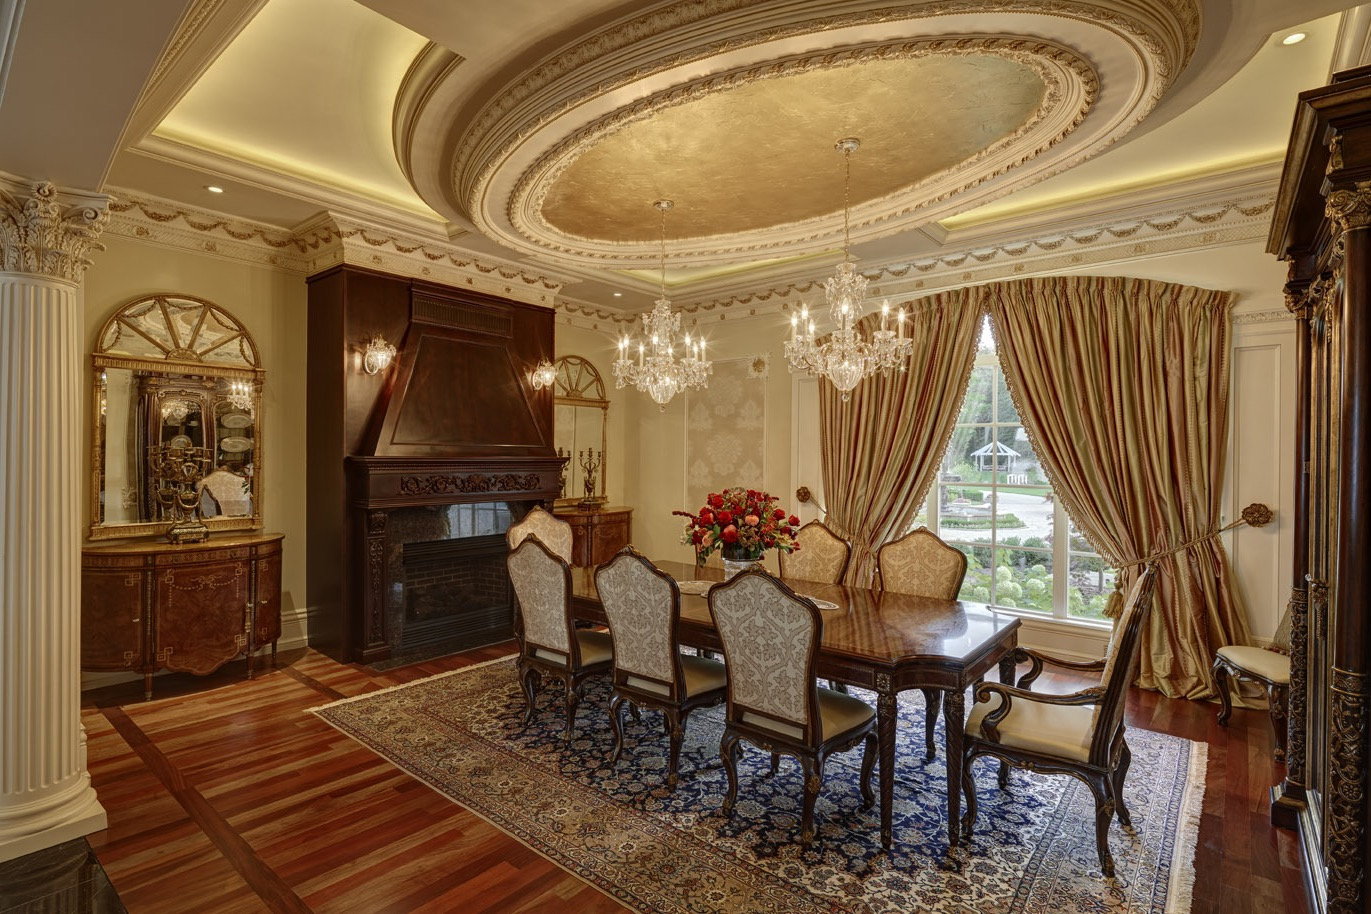 Classic And Luxury Formal Dining Room Interior (Image 5 of 30)